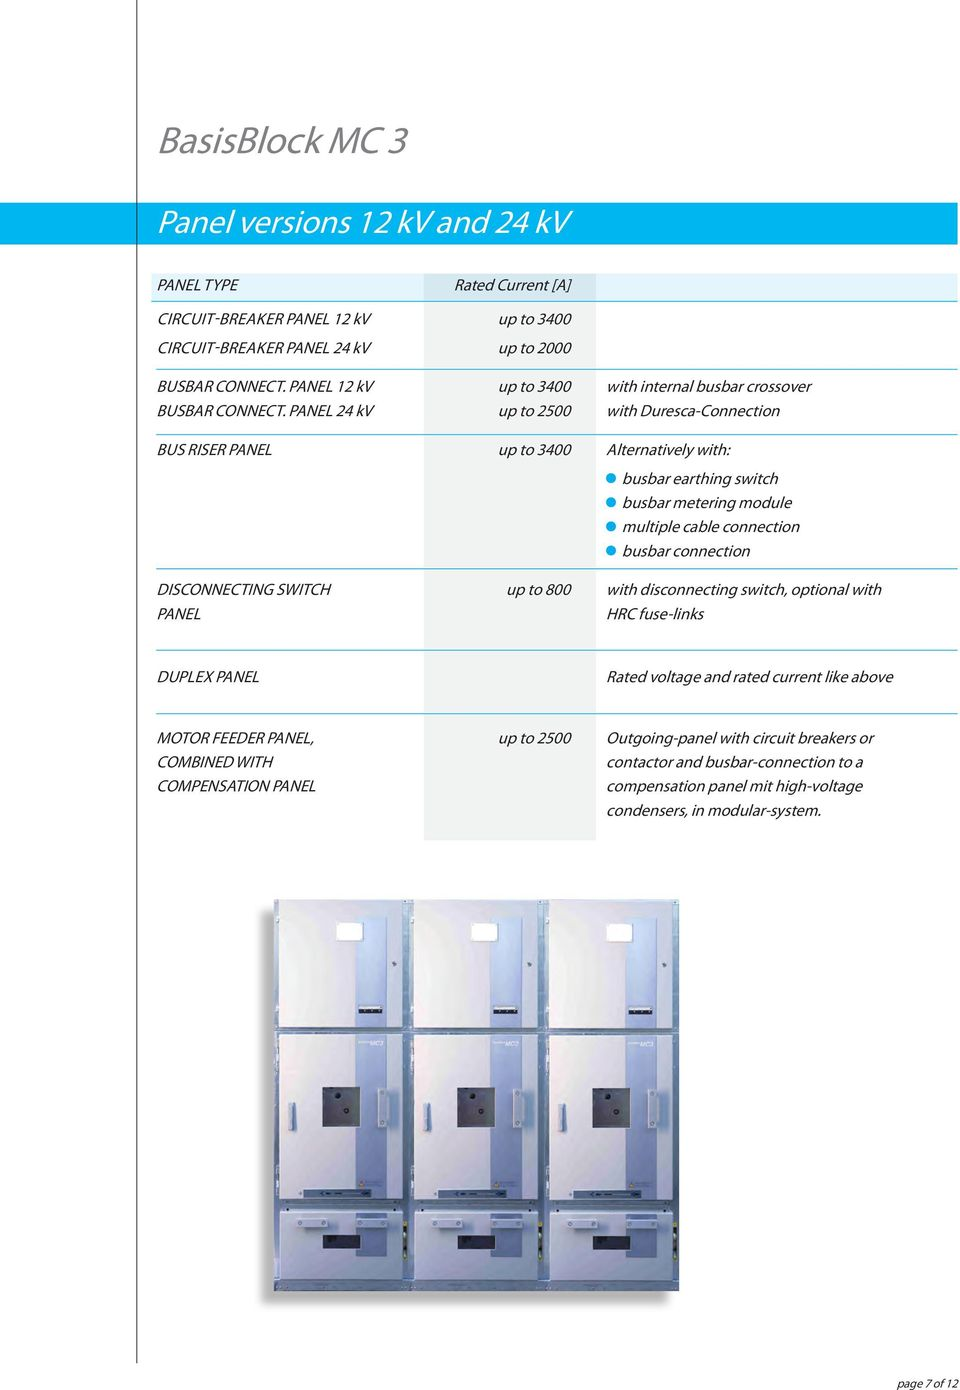 PANEL 24 kv up to 2500 with Duresca-Connection BUS RISER PANEL up to 3400 Alternatively with: busbar earthing switch busbar metering module multiple cable connection busbar connection